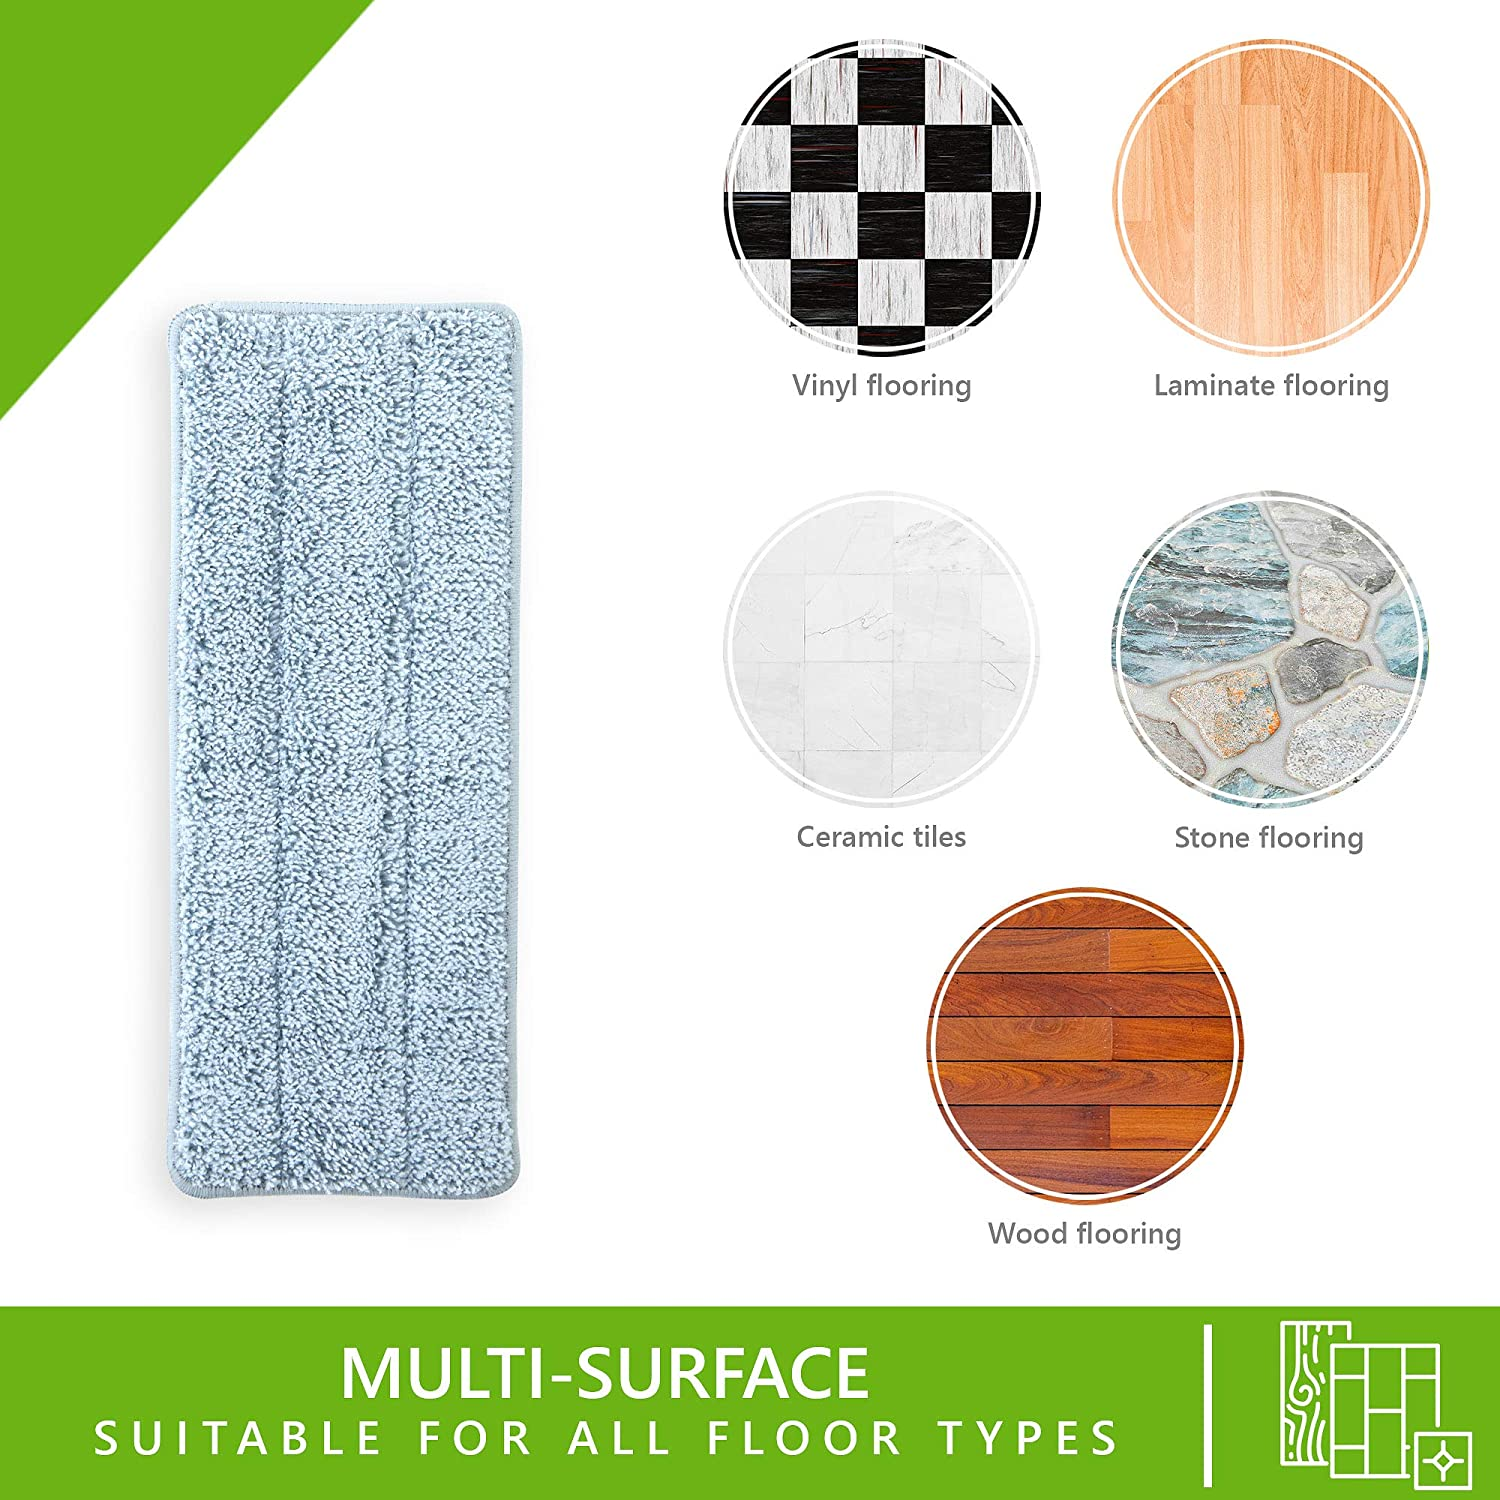 Super Absorbent and Ecological Microfiber. Suitable for all floor types and machine washable Easy Gleam 2 PACK Microfibre Mop Pad Replacement for EasyGleam Flat Mop and Bucket